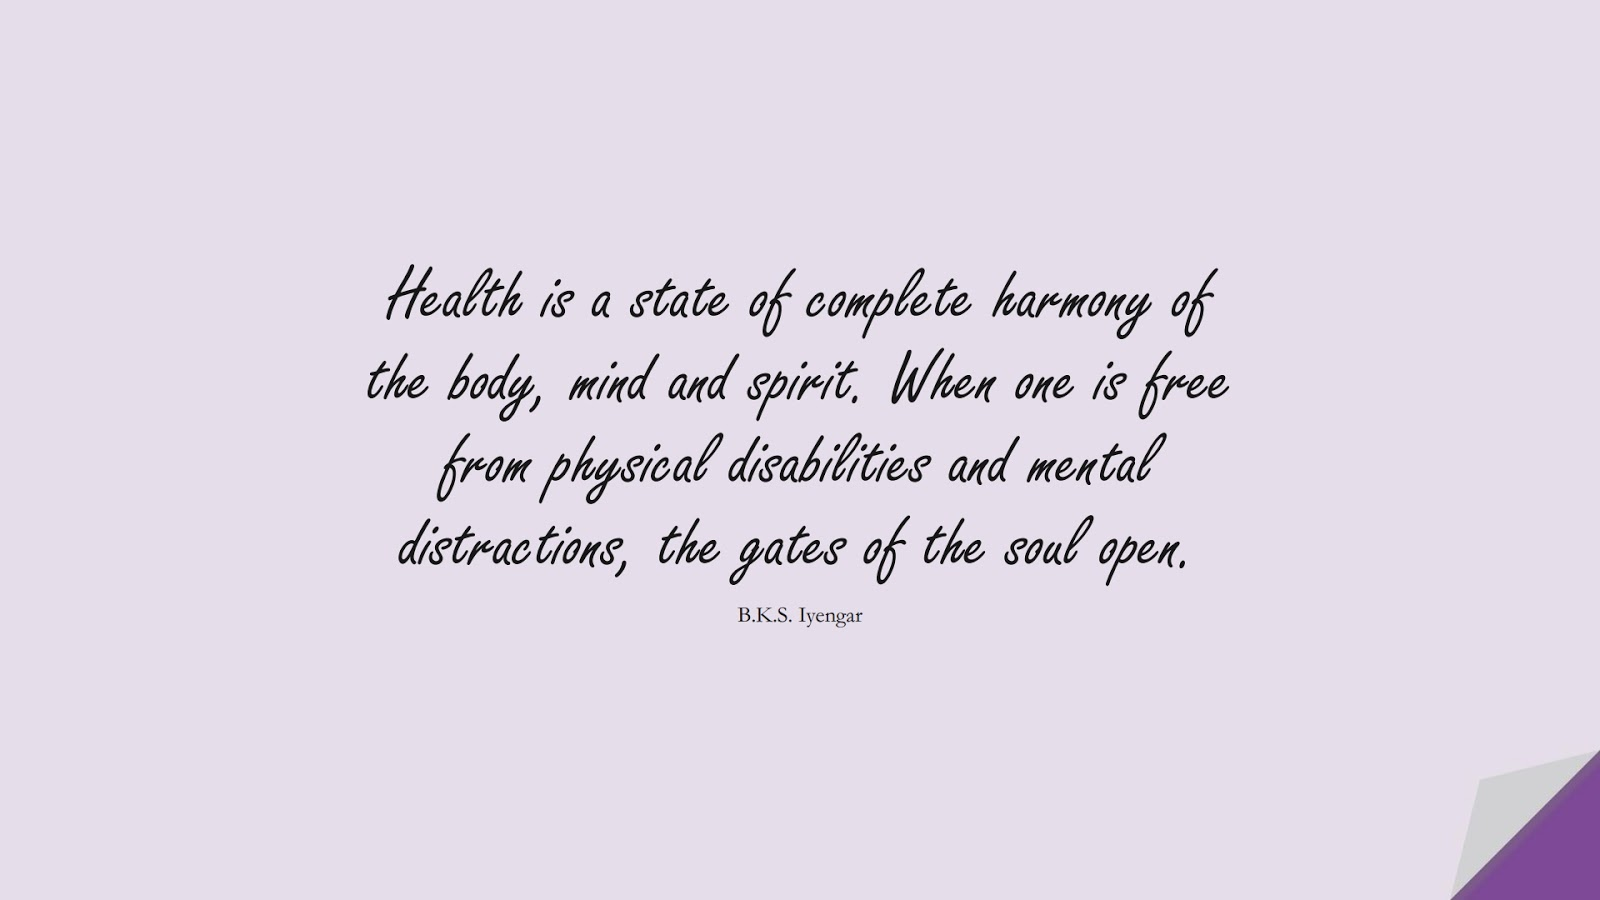 Health is a state of complete harmony of the body, mind and spirit. When one is free from physical disabilities and mental distractions, the gates of the soul open. (B.K.S. Iyengar);  #HealthQuotes